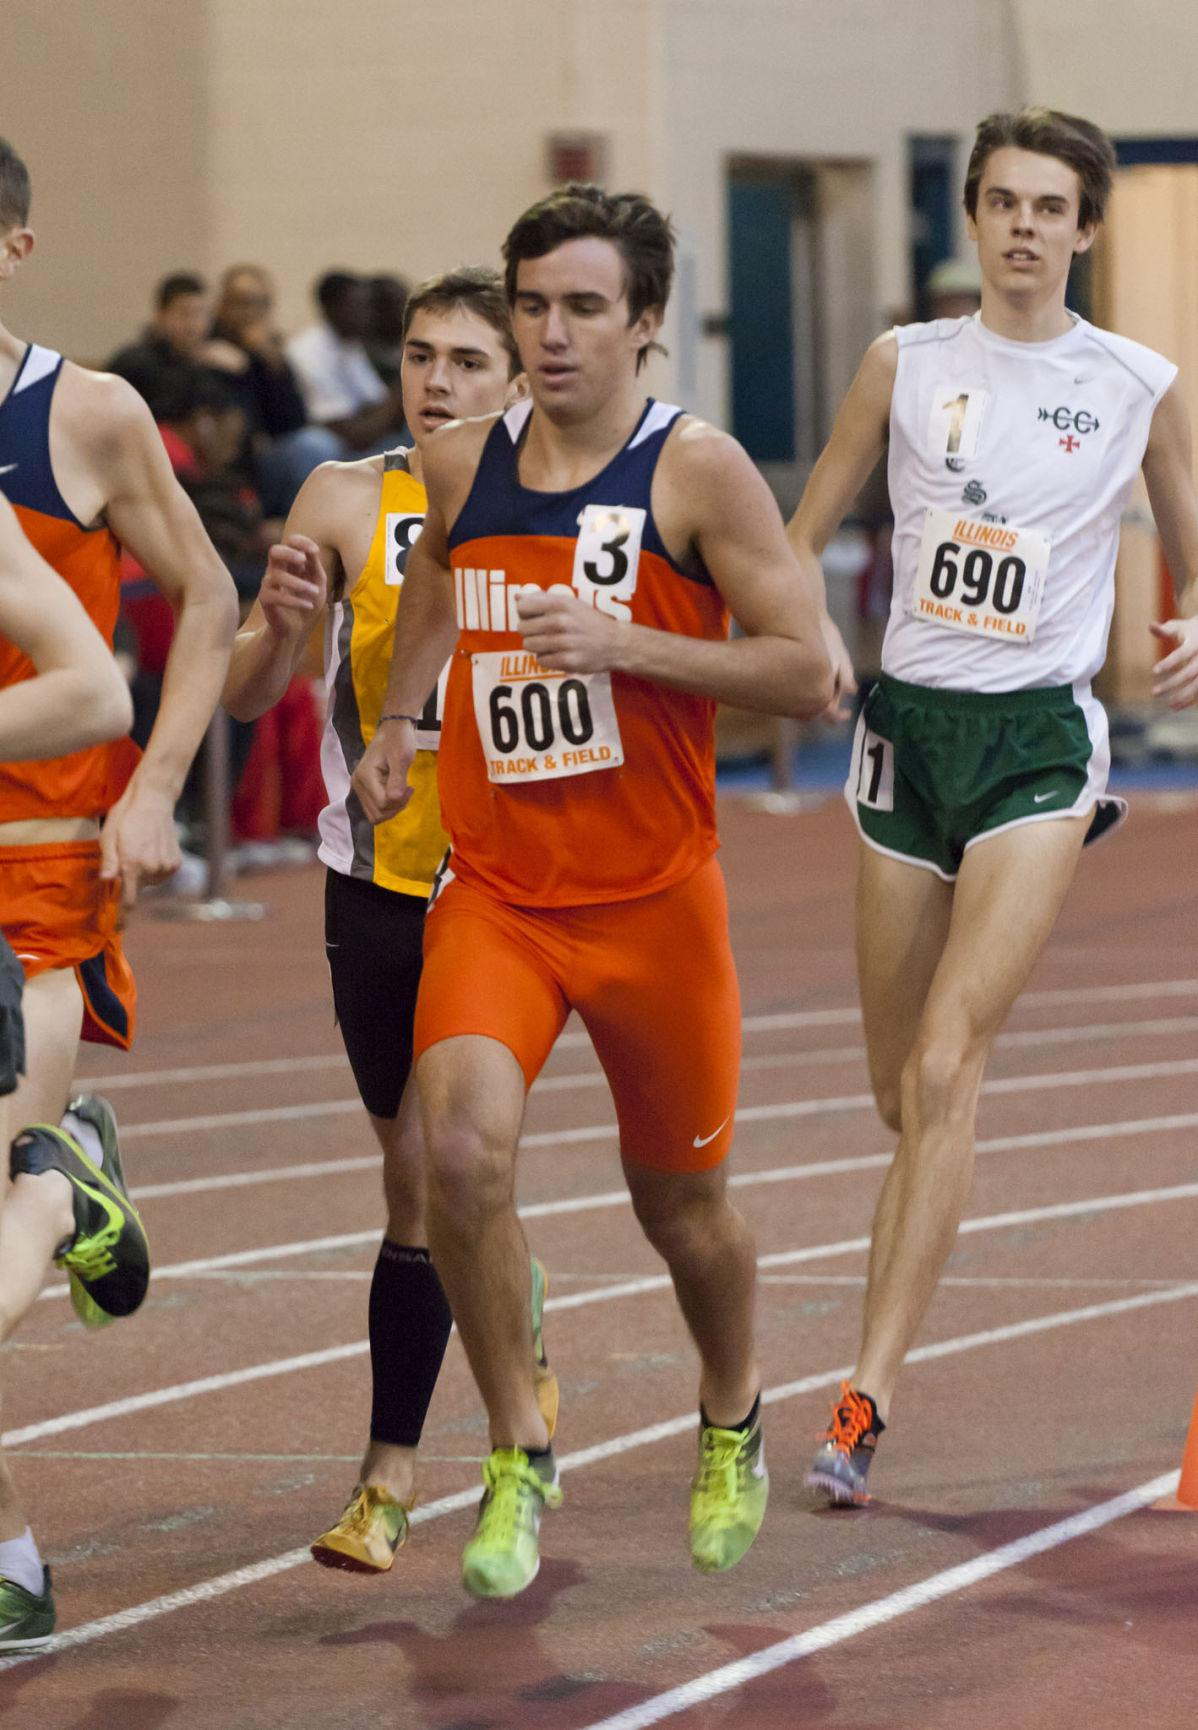 Joe McAsey (600) runs in the 1 Mile Event during the Orange and Blue Open at the Armory on Saturday Feb. 4, 2012.